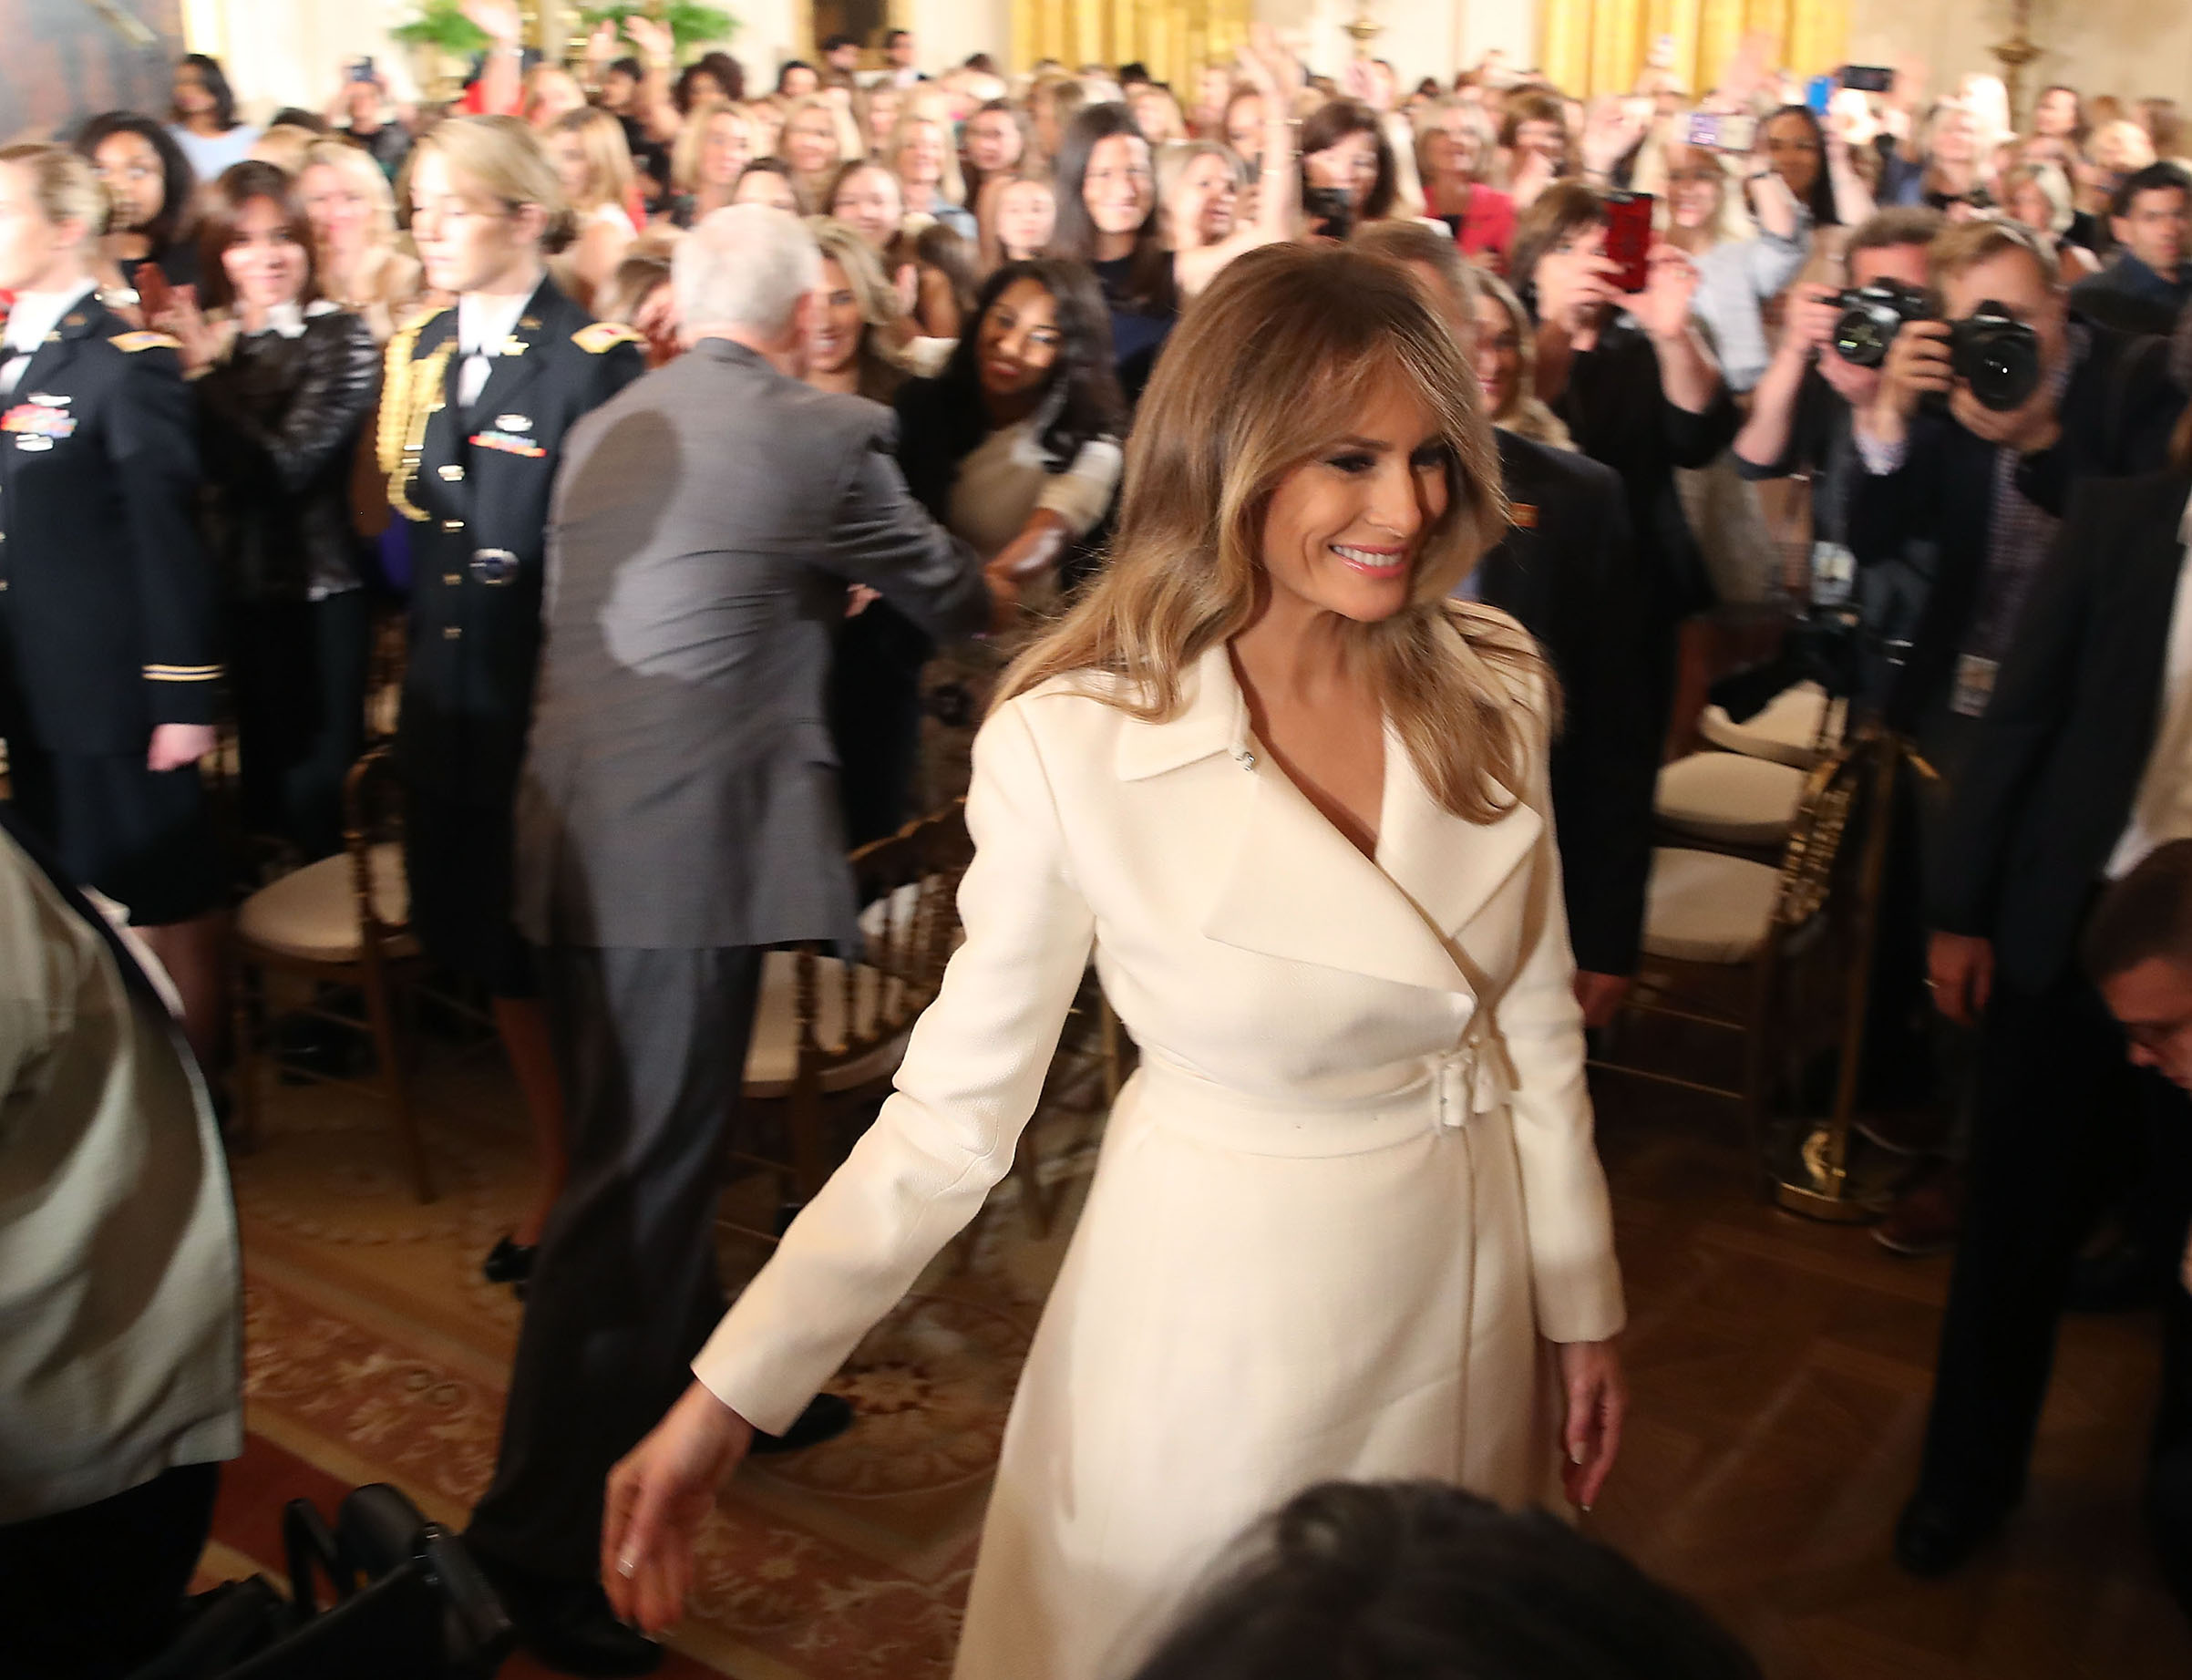 First lady Melania Trump  wearing a white coat dress from The Row, walks away after attending and event celebrating Women's History Month, in the East Room at the White House March 29, 2017 in Washington, D.C.